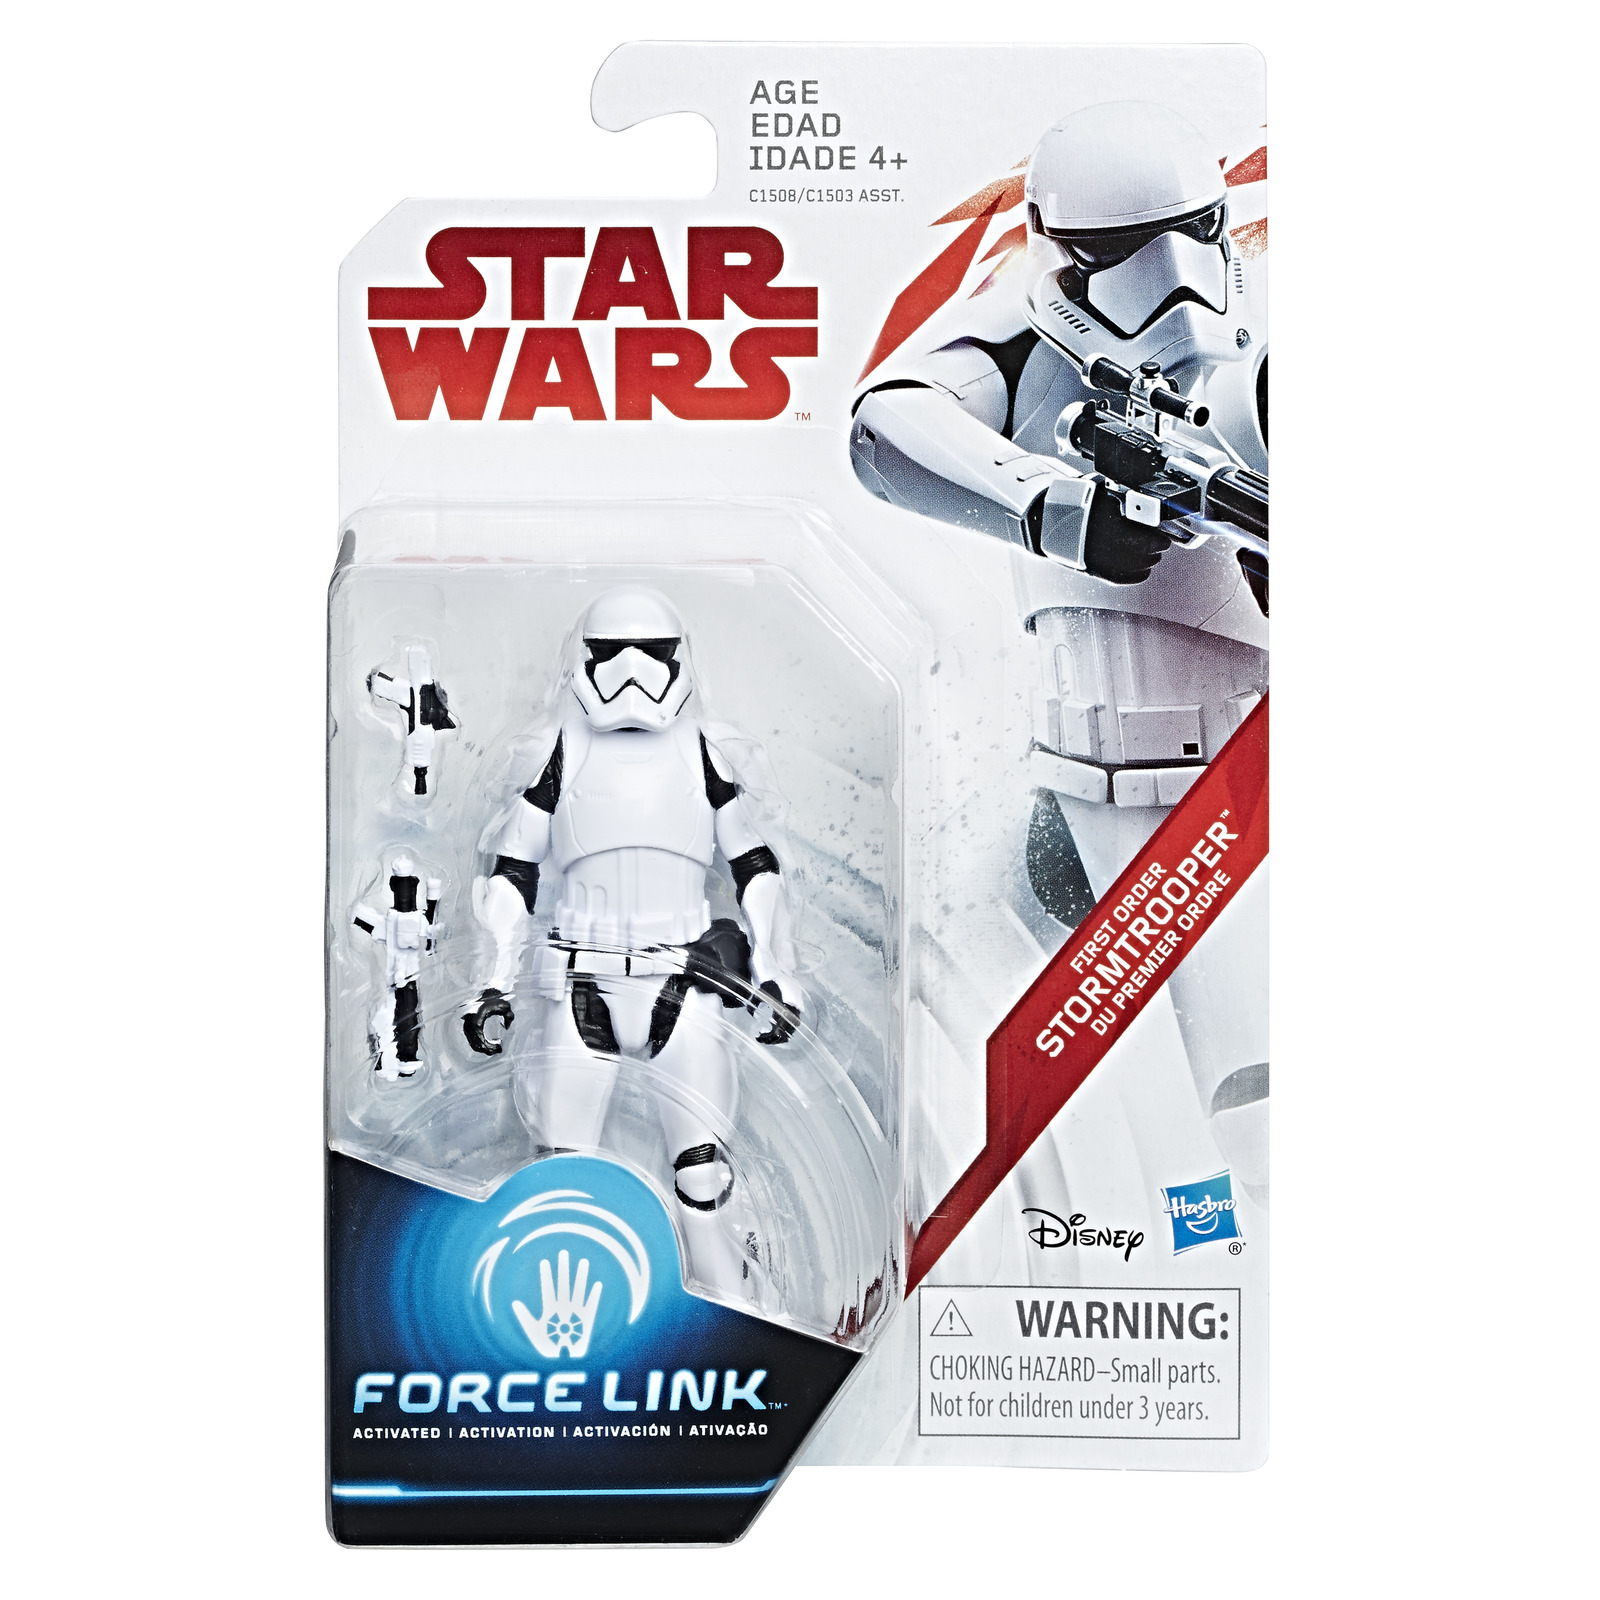 Star Wars: Force Link Figure - First Order Stormtrooper image